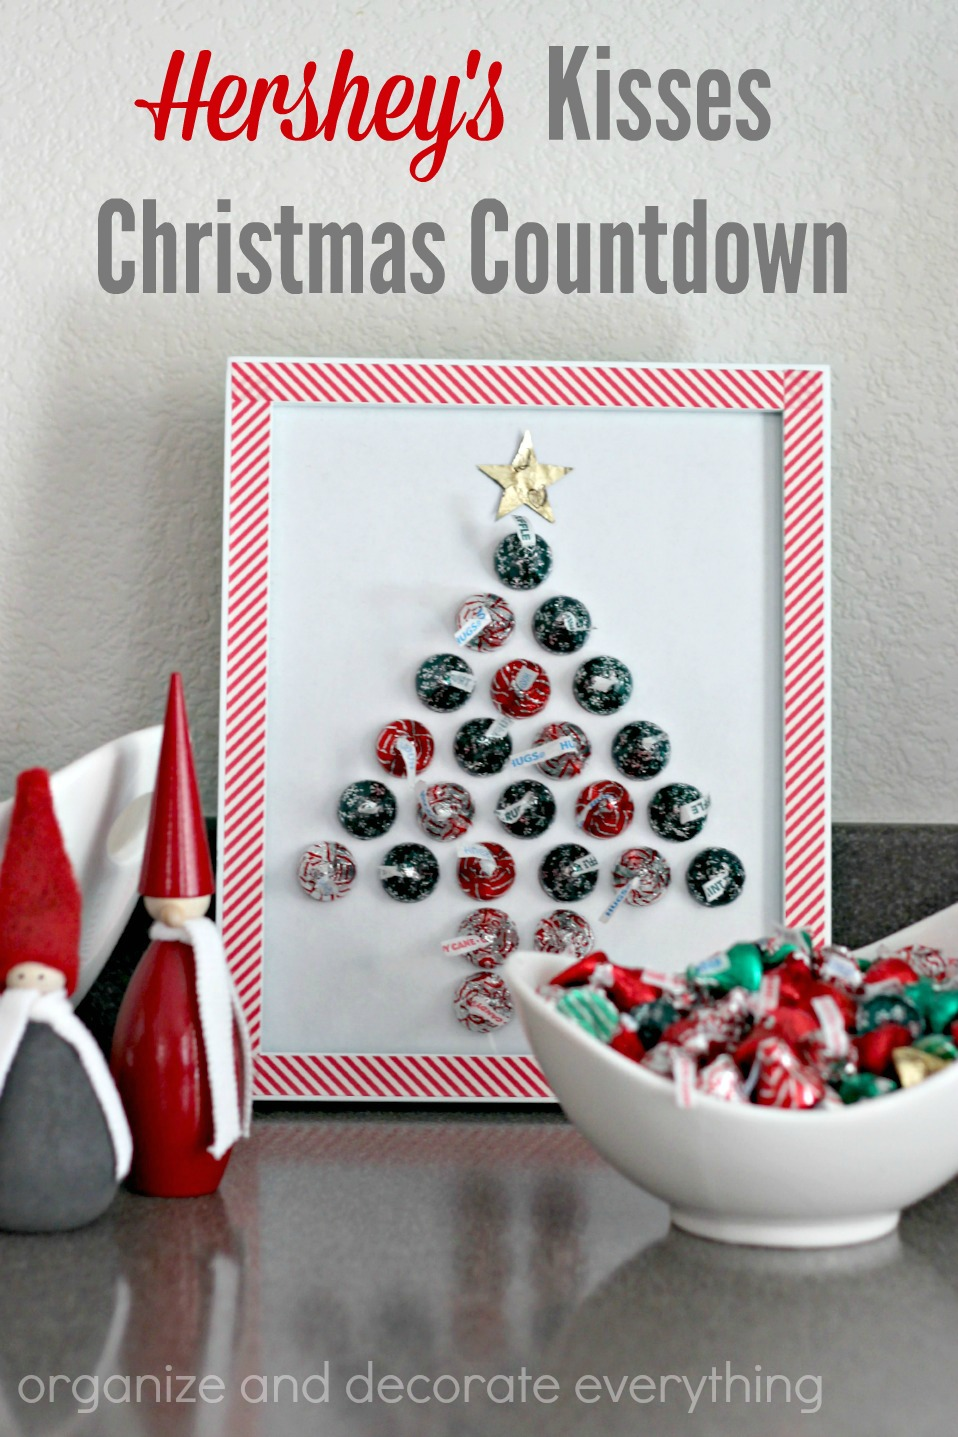 Hersheys Kisses Christmas Countdown Organize And Decorate Everything